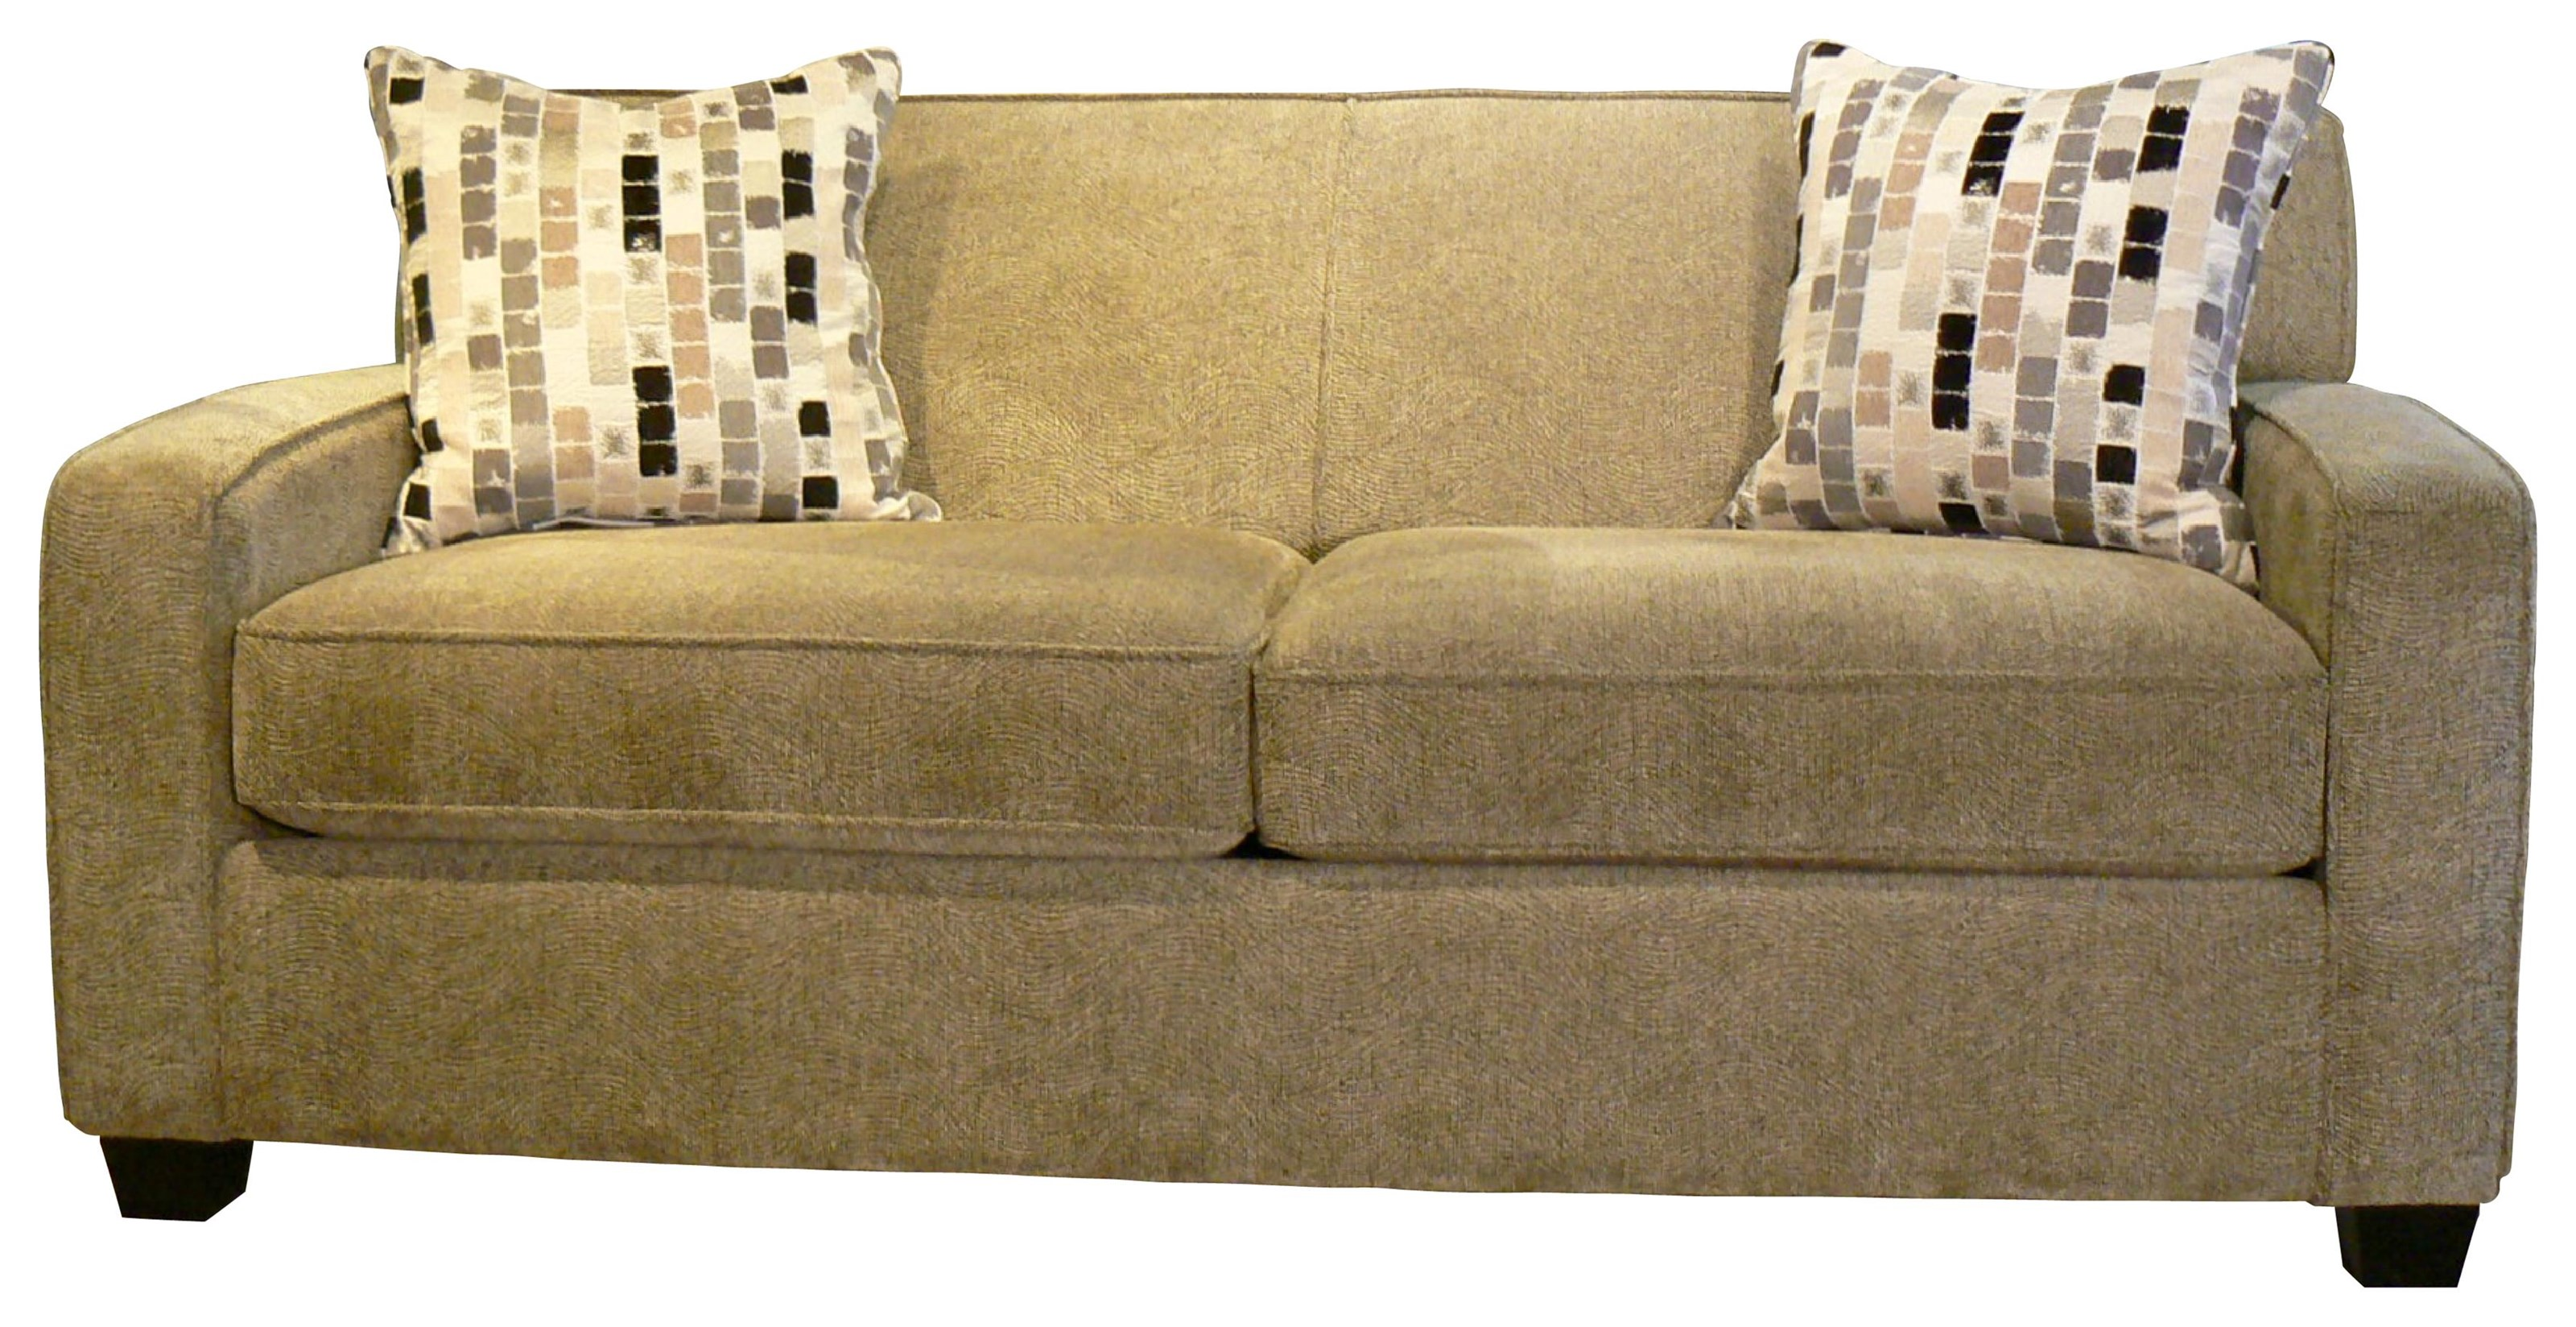 Nita Double Sofabed by Taelor Designs at Bennett's Furniture and Mattresses